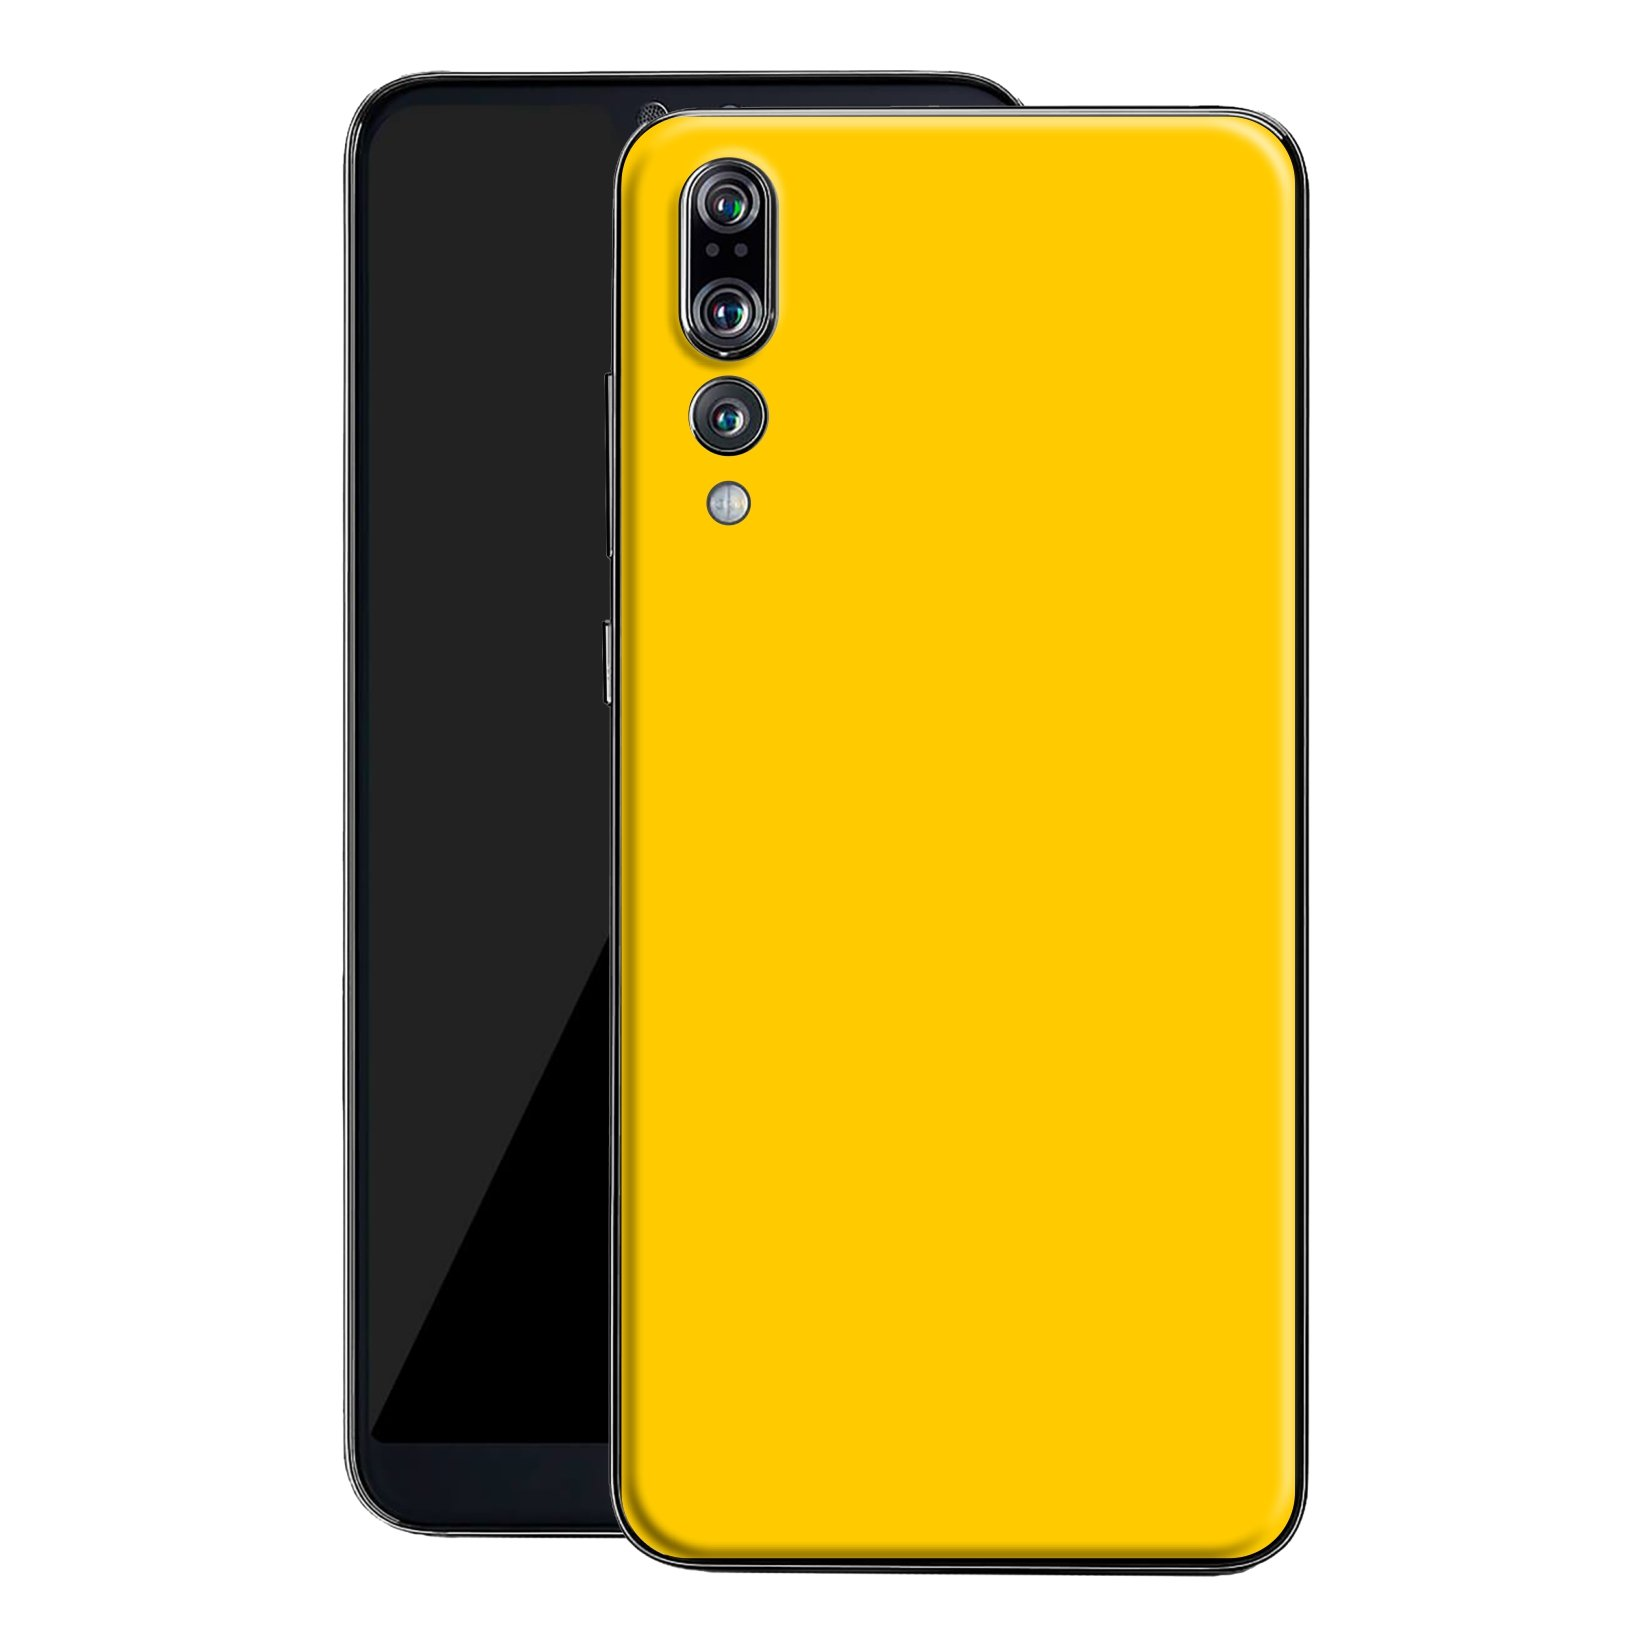 Huawei P20 PRO Golden Yellow Glossy Gloss Finish Skin, Decal, Wrap, Protector, Cover by EasySkinz | EasySkinz.com